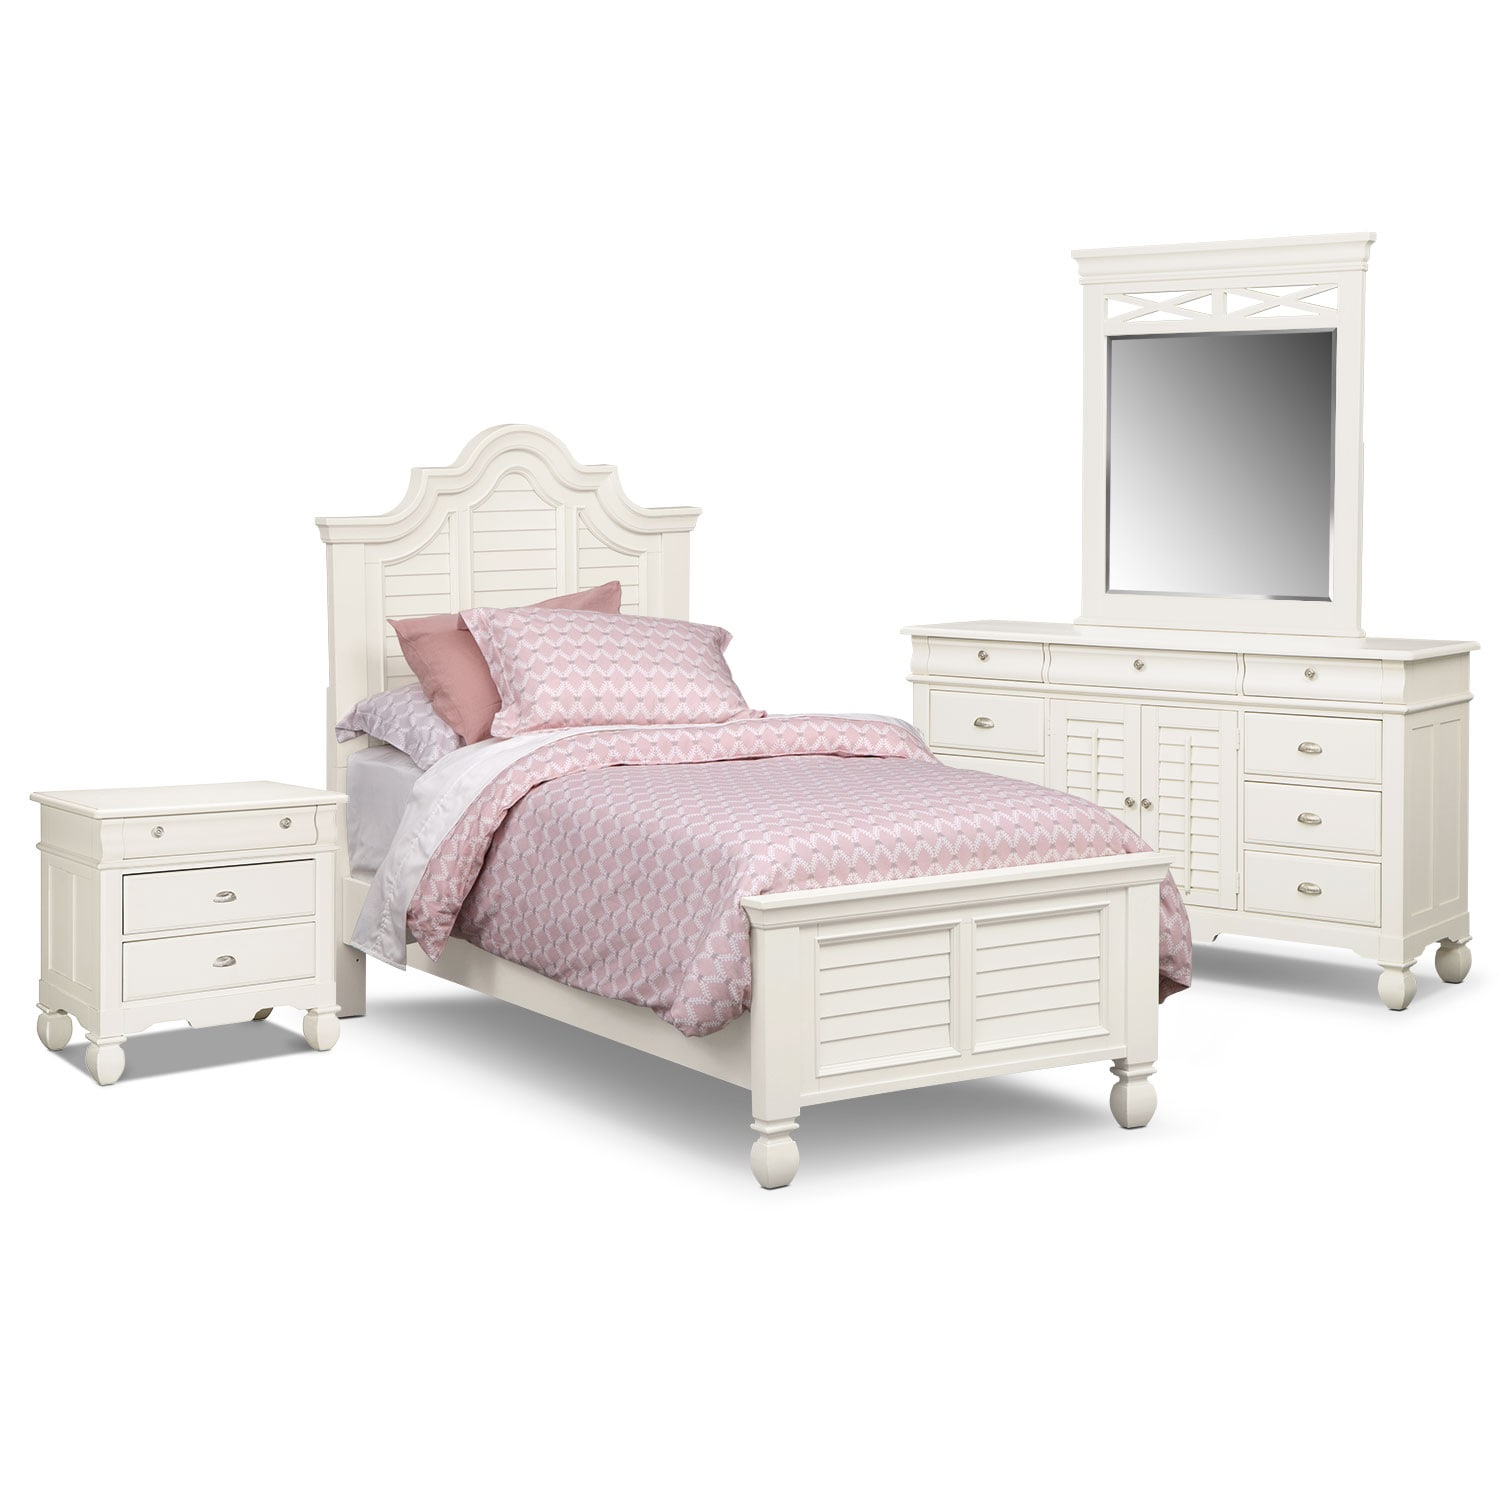 Plantation Cove 6-Piece Twin Bedroom Set - White